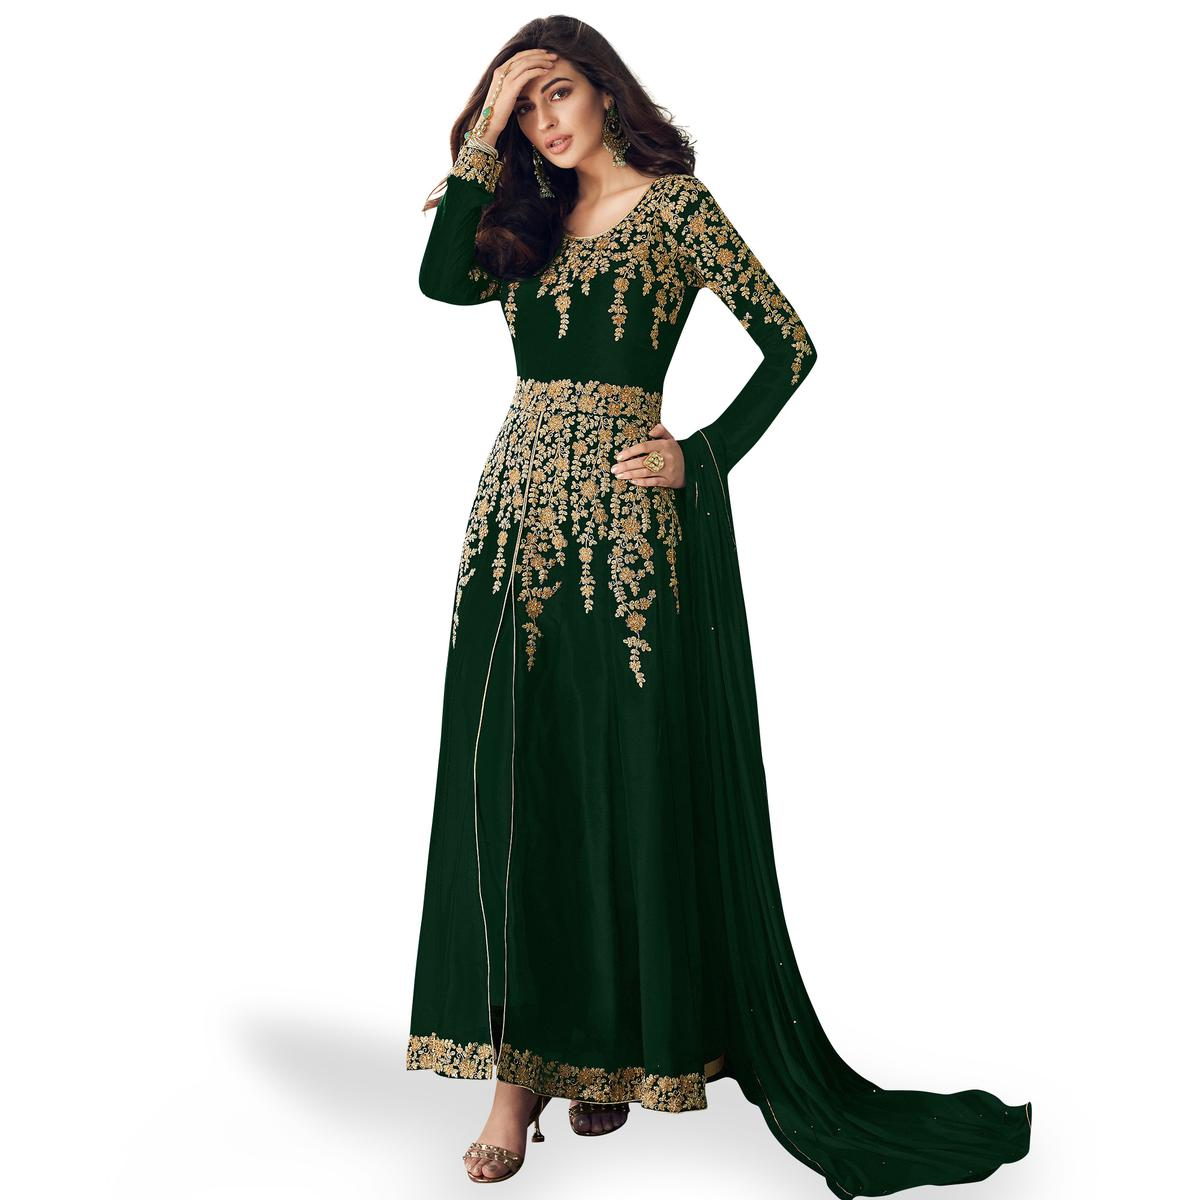 Marvellous Dark Green Colored Partywear Embroidered Faux Georgette Anarkali Suit